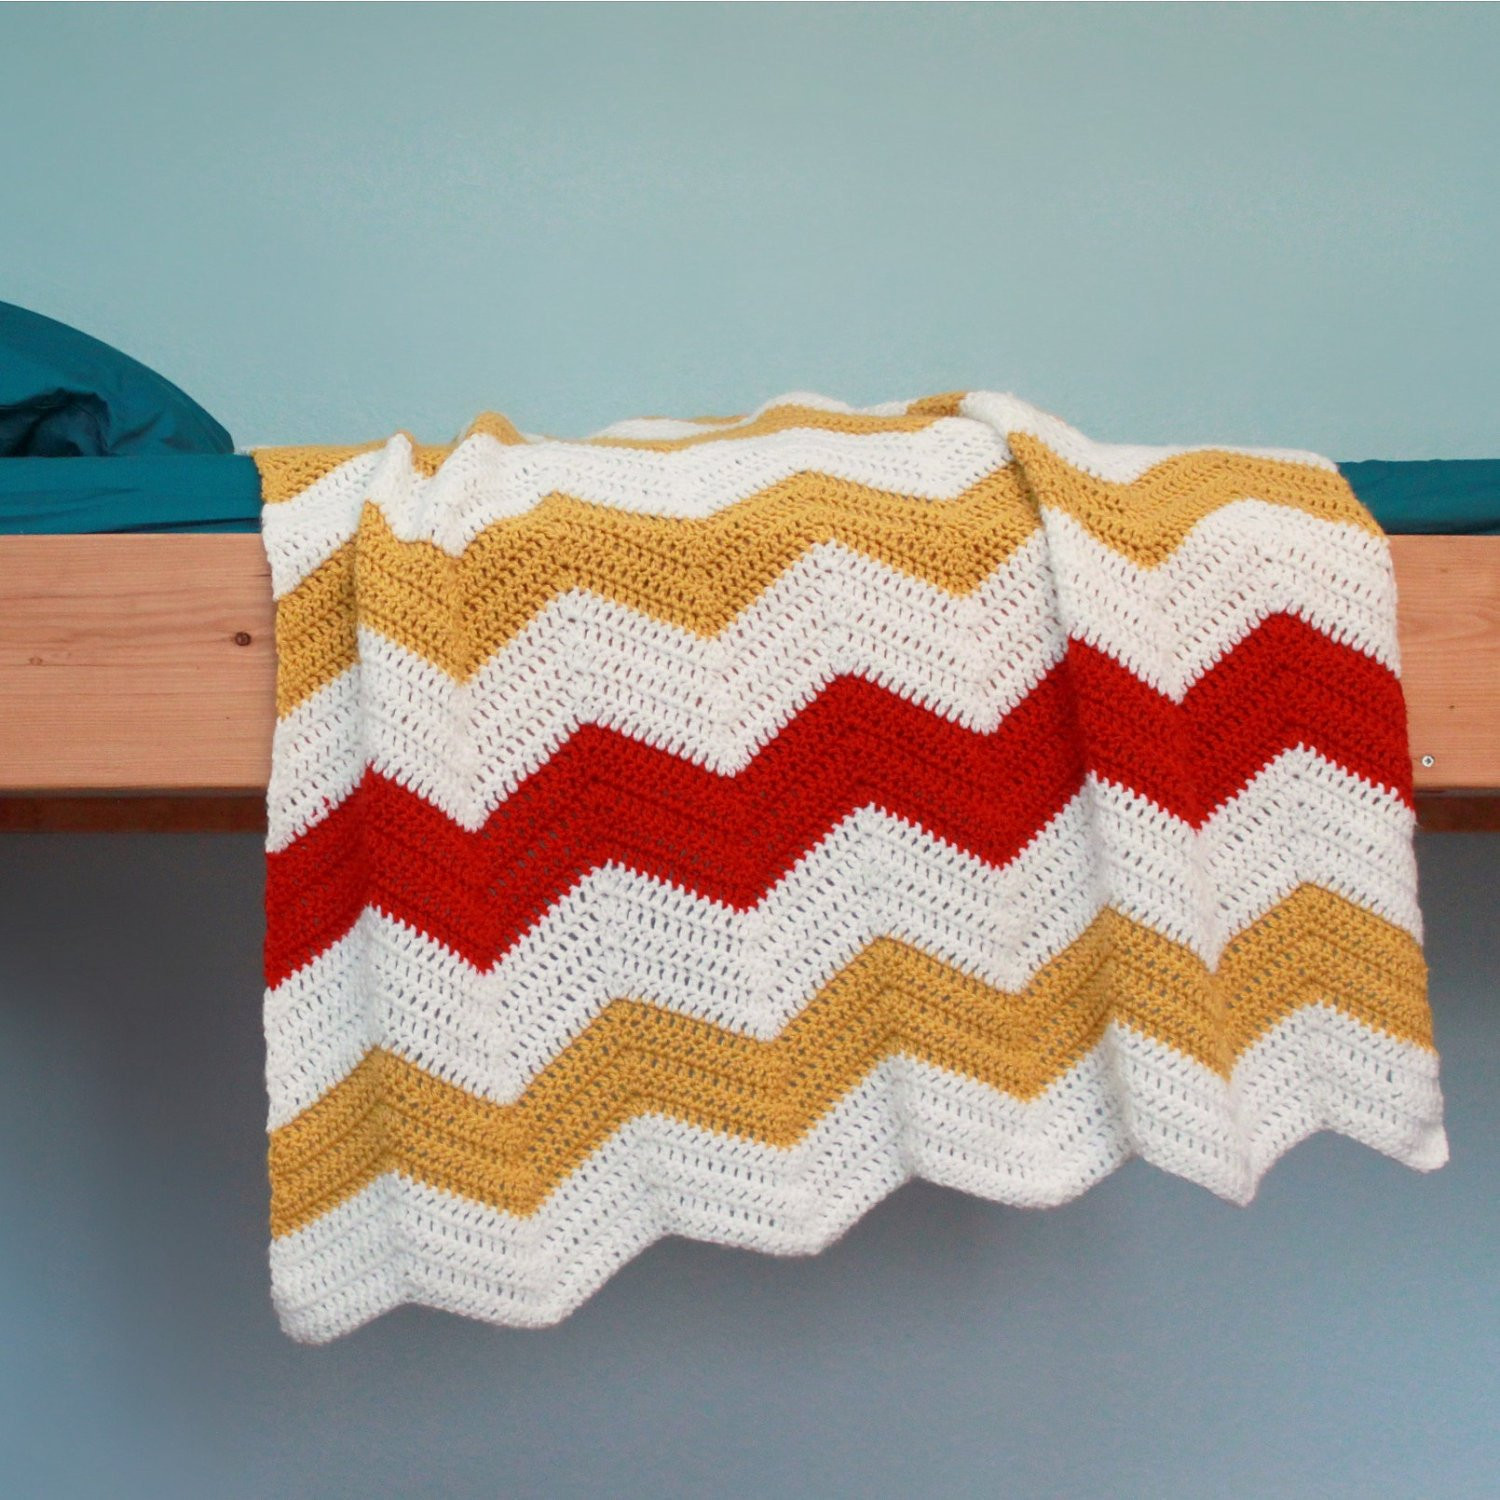 Chevron Baby Blanket Lovely Crochet Blanket Pattern Chevron Blanket Of Attractive 49 Pics Chevron Baby Blanket